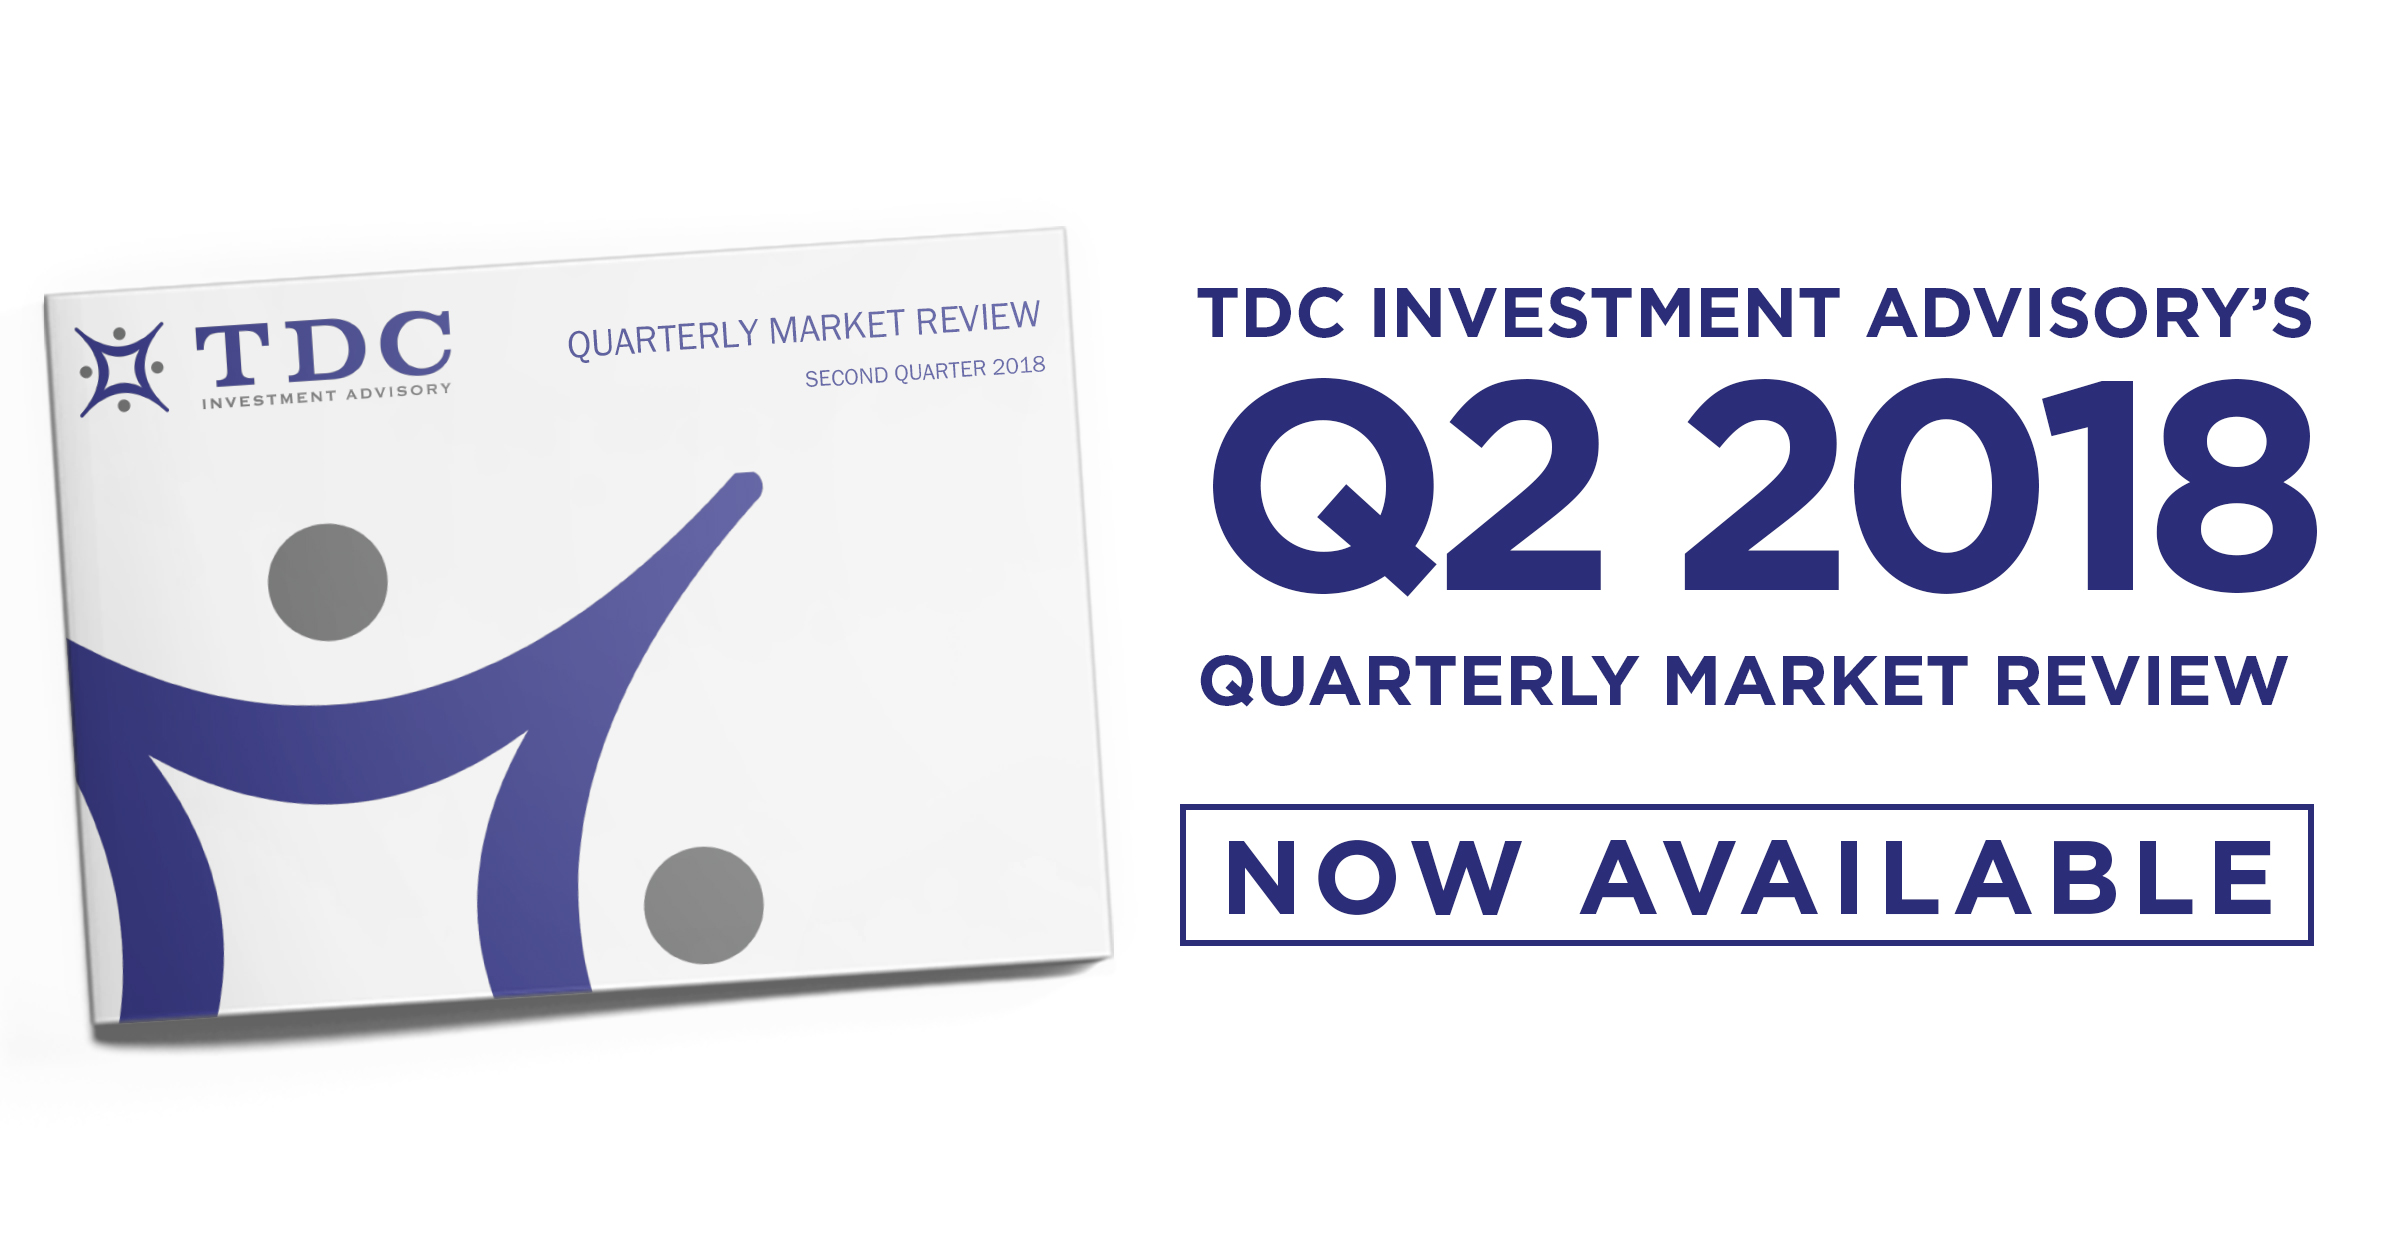 TDC's Quarterly Market Review for Q2 2018 is Now Available